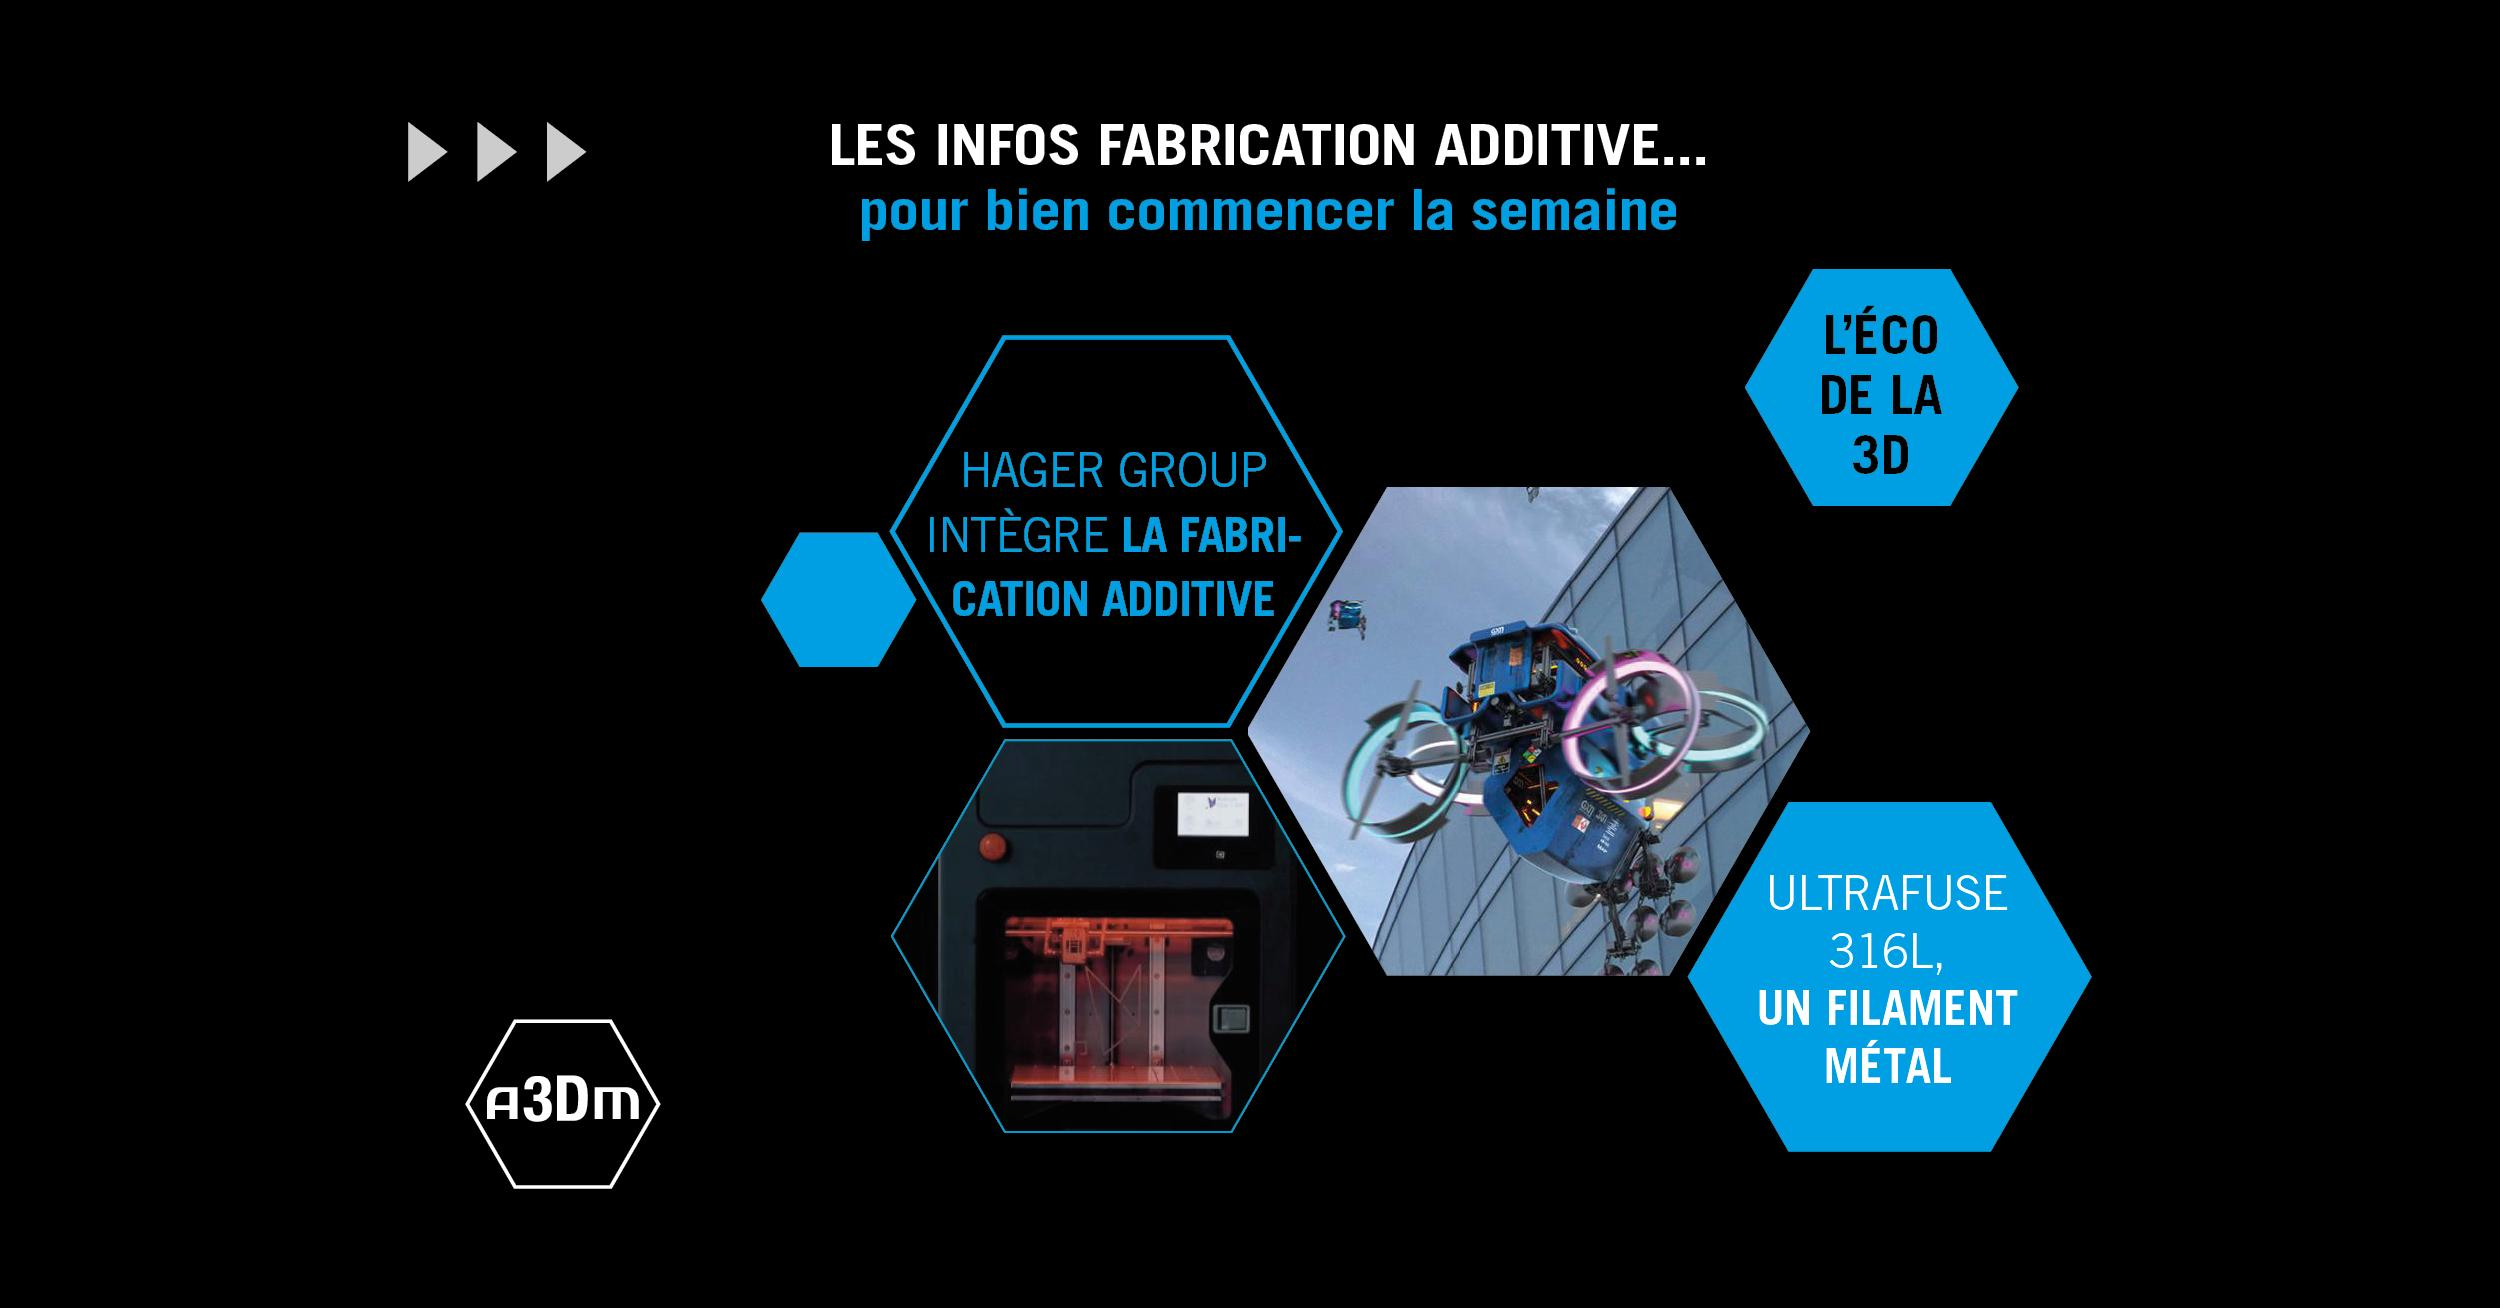 L'hebdo de la fabrication additive #13